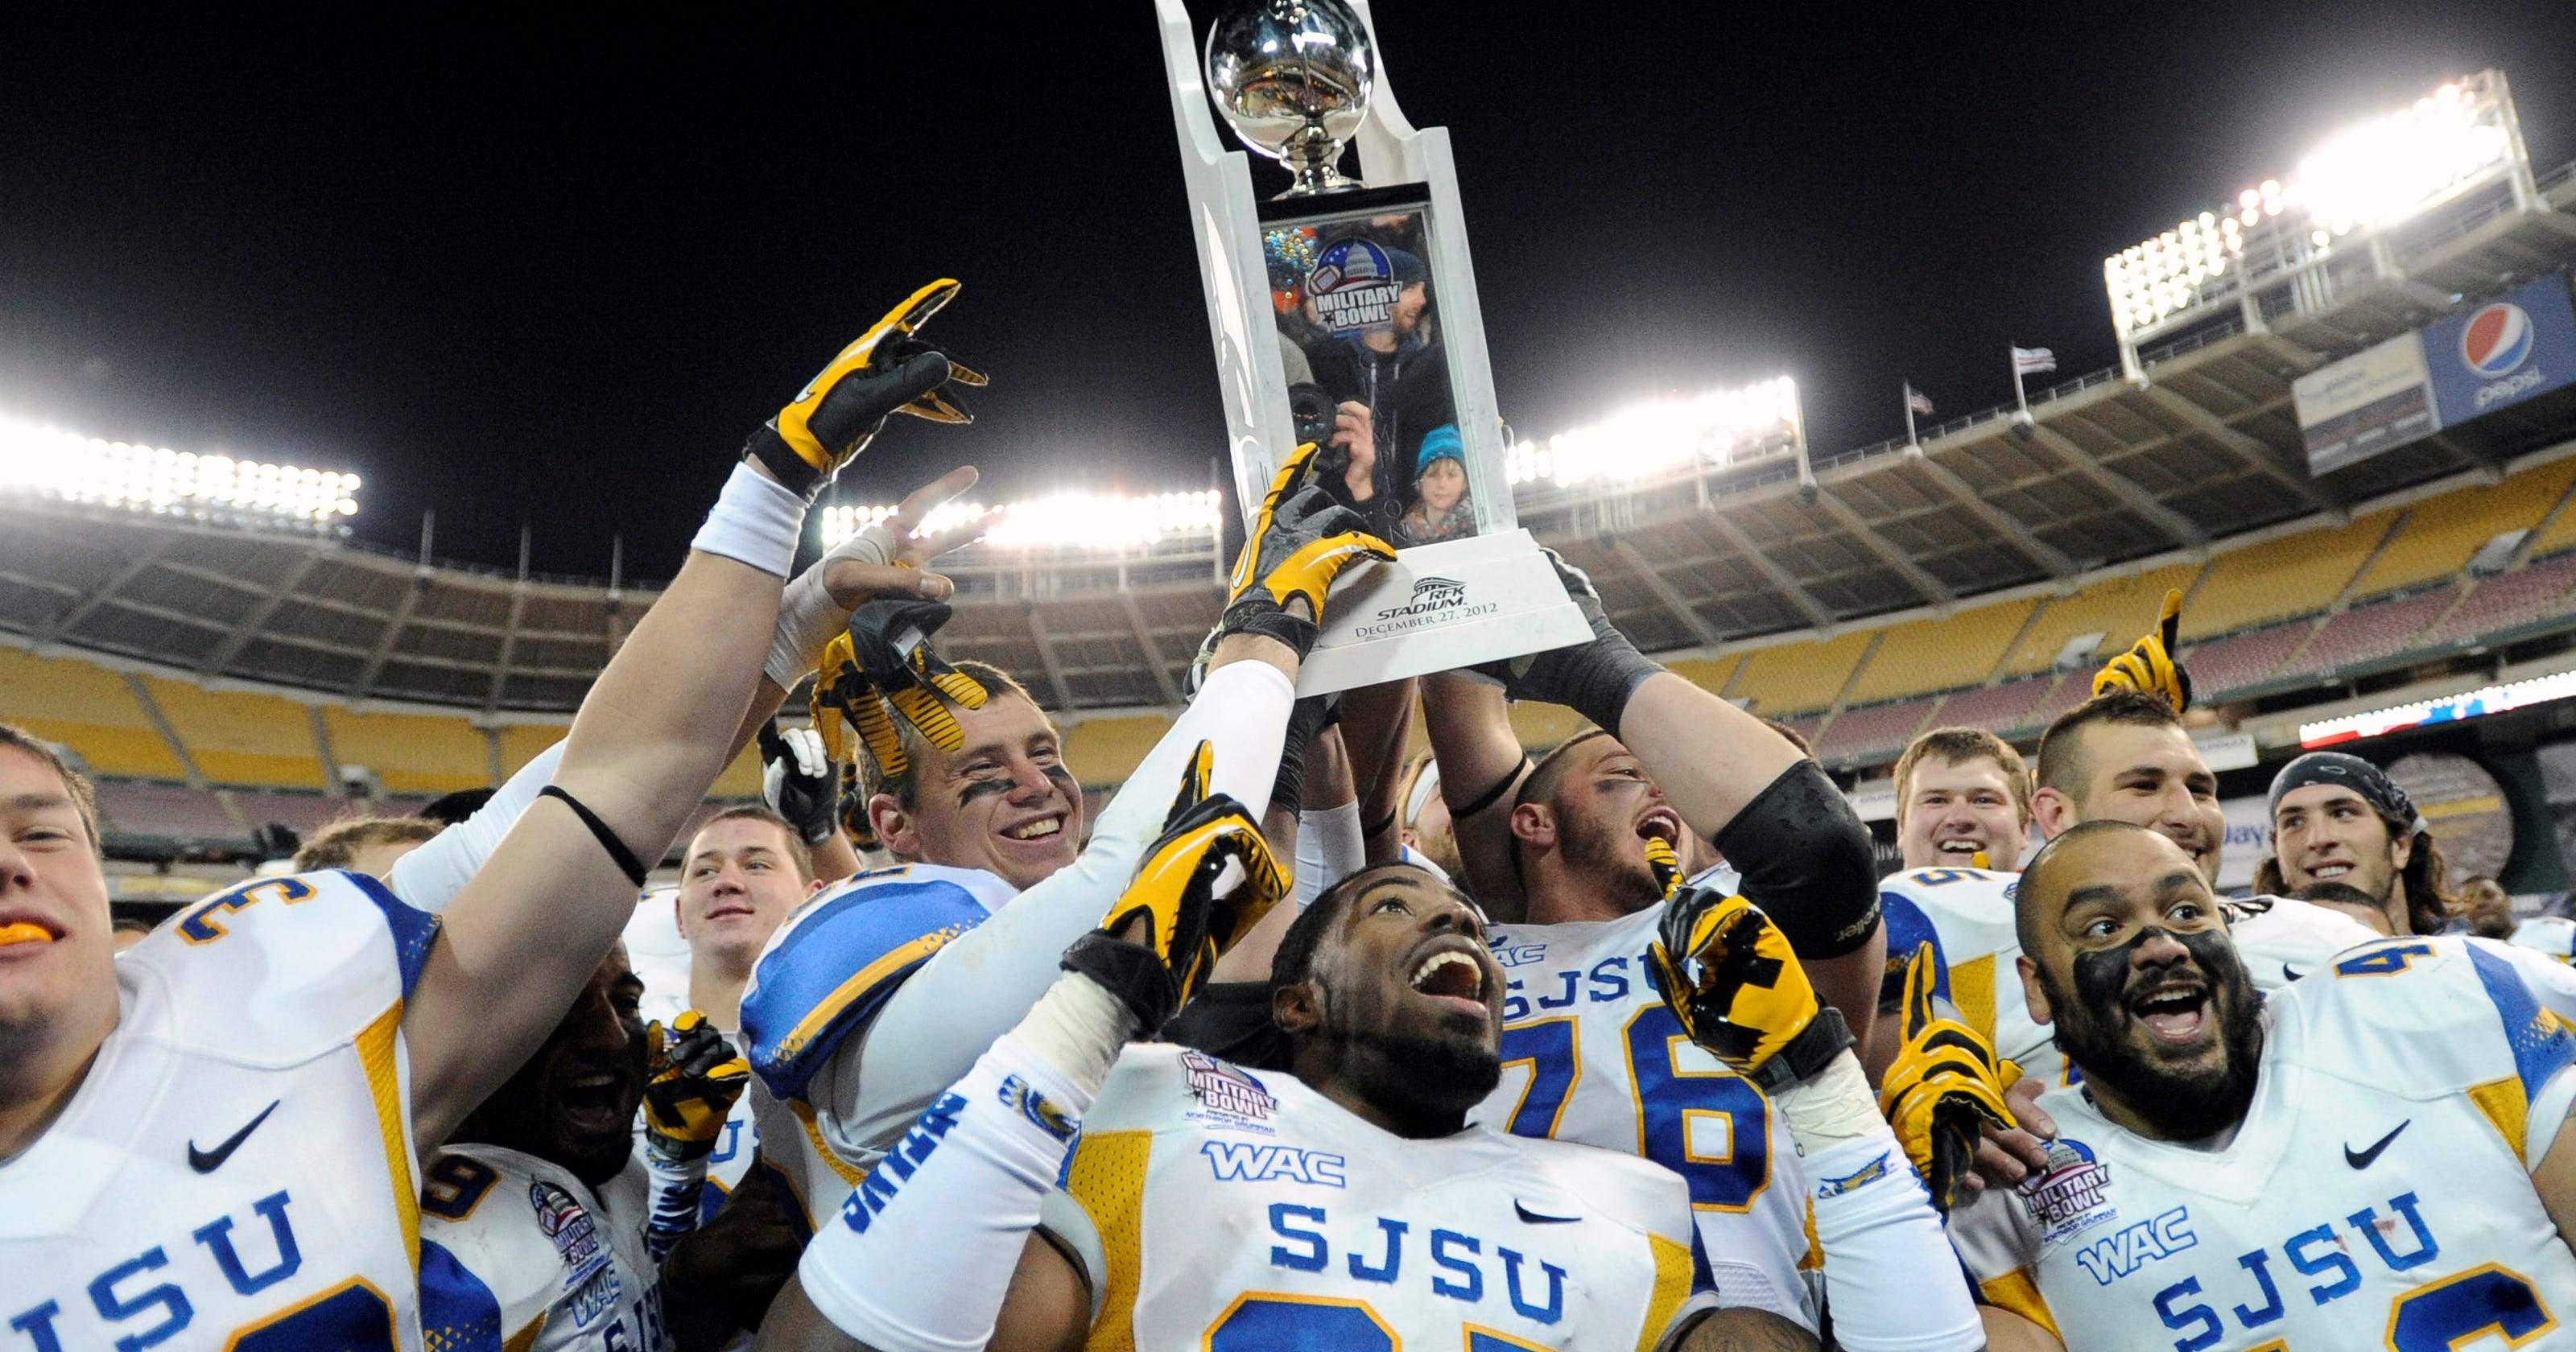 2013 14 College Football Bowl Schedule